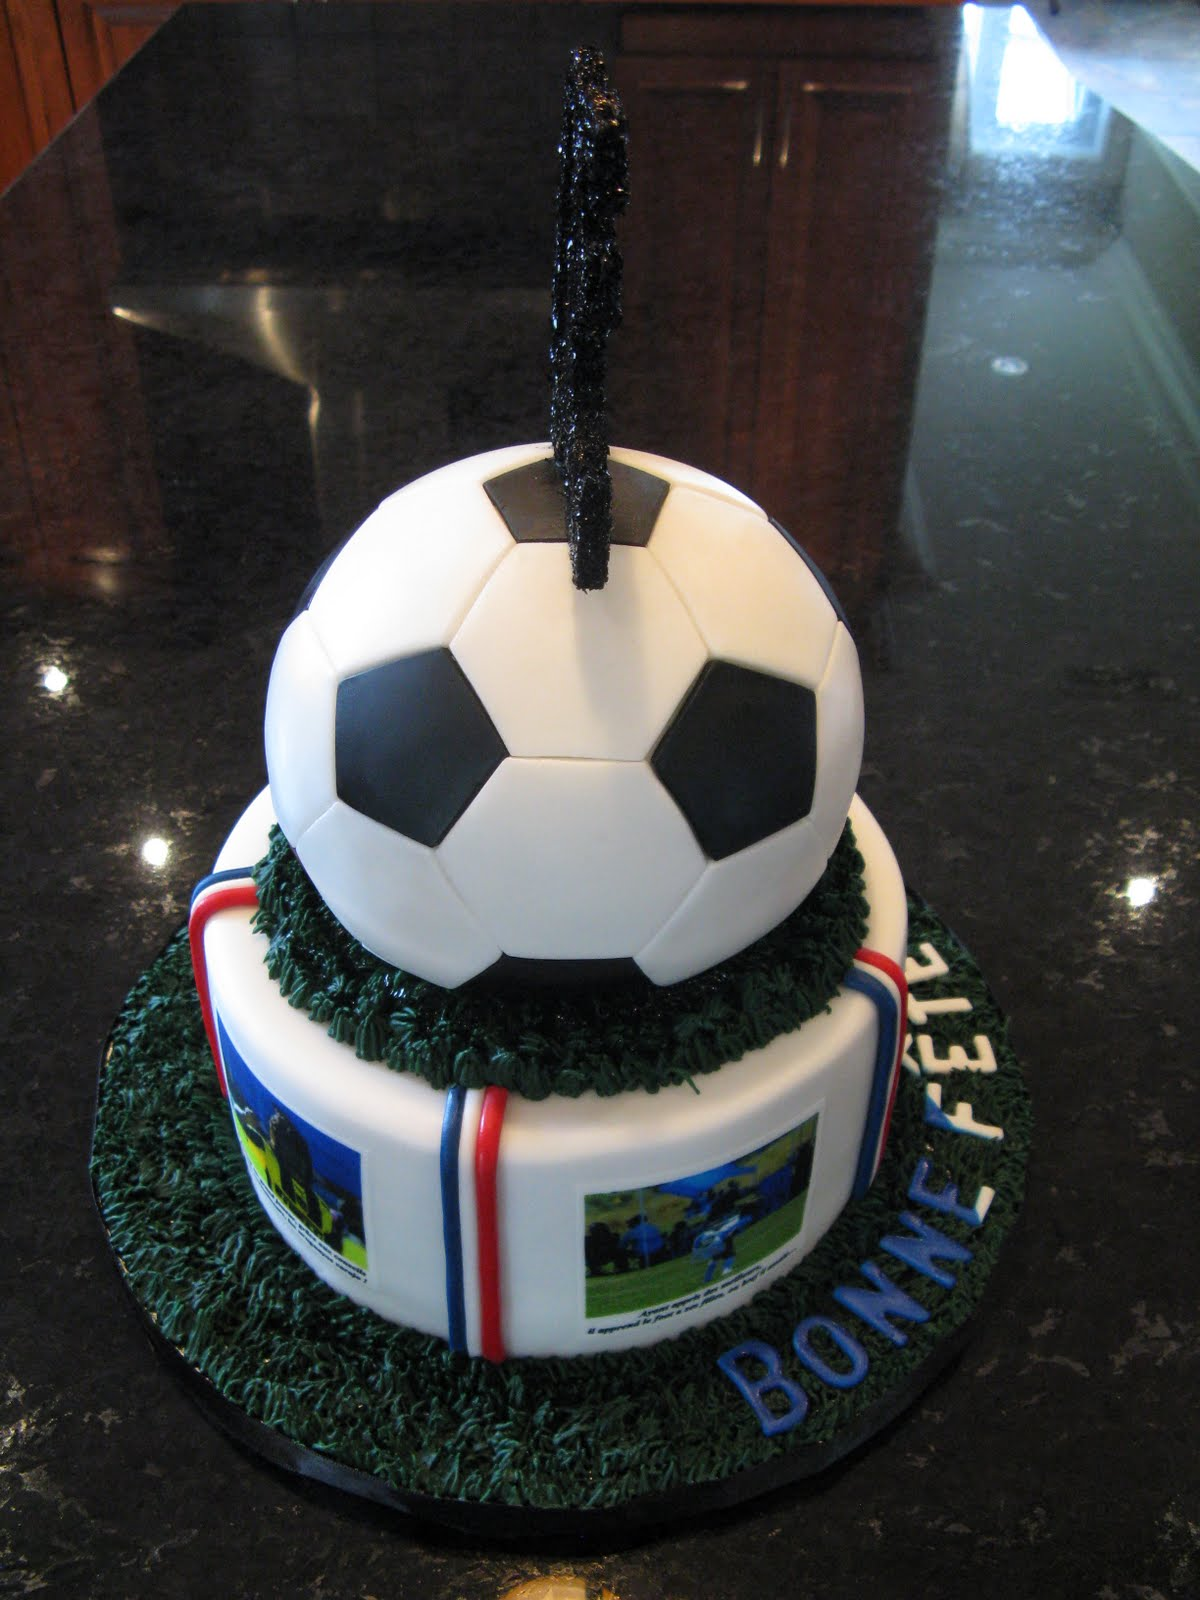 Gteaux Design Gteau Ballon soccer 30 ans  30 th soccer ball cake